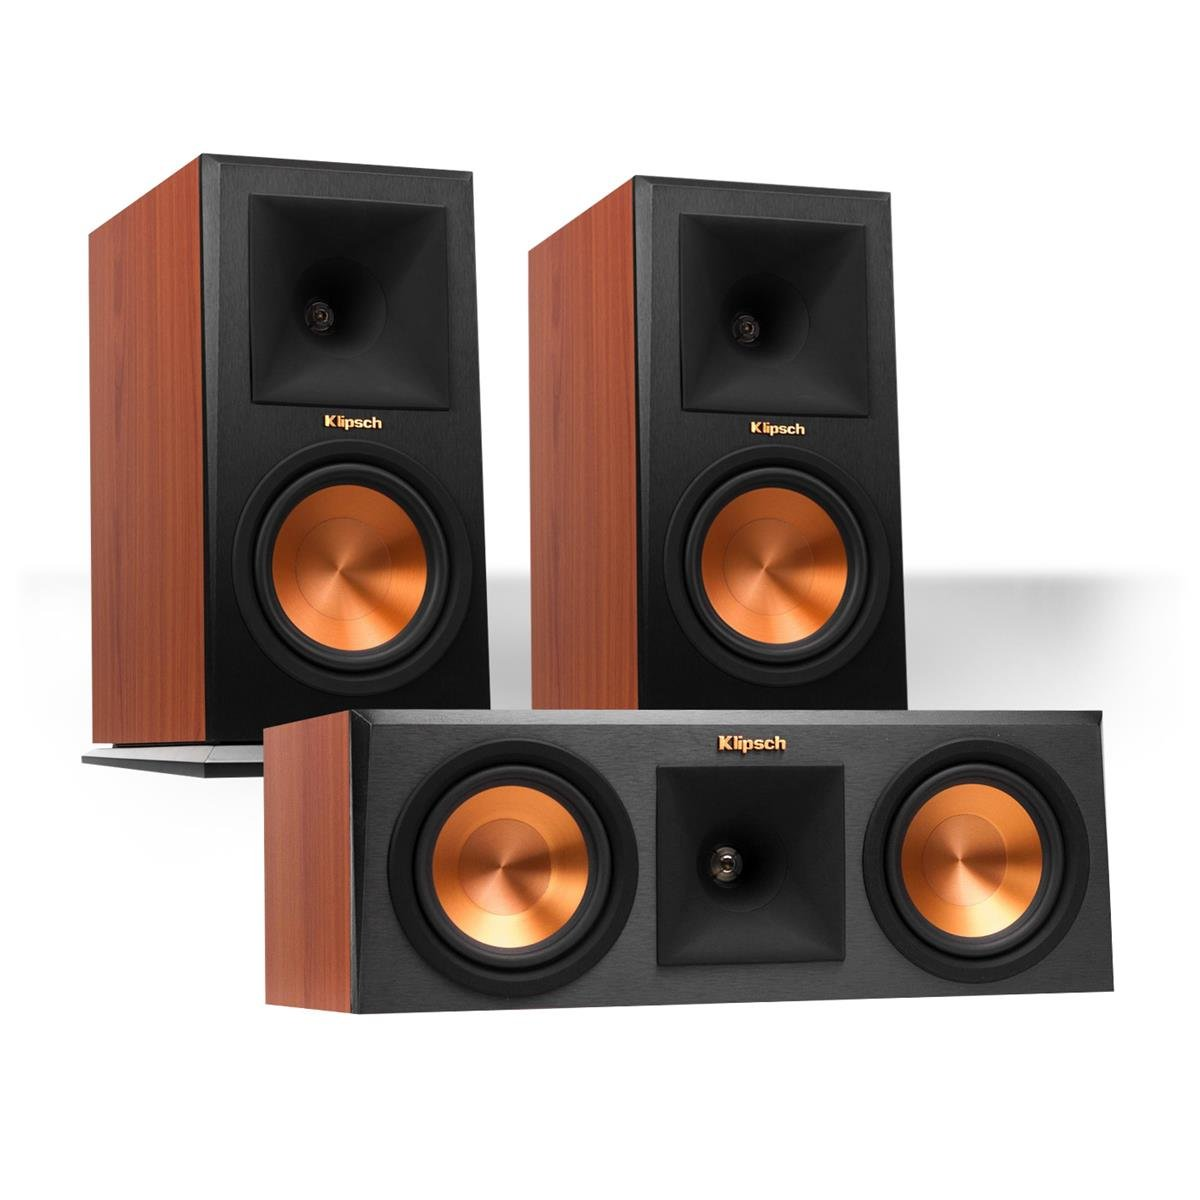 Klipsch RP-160M Reference Premiere Monitor Speakers Pair with RP-250C Center Channel Speaker (Cherry)